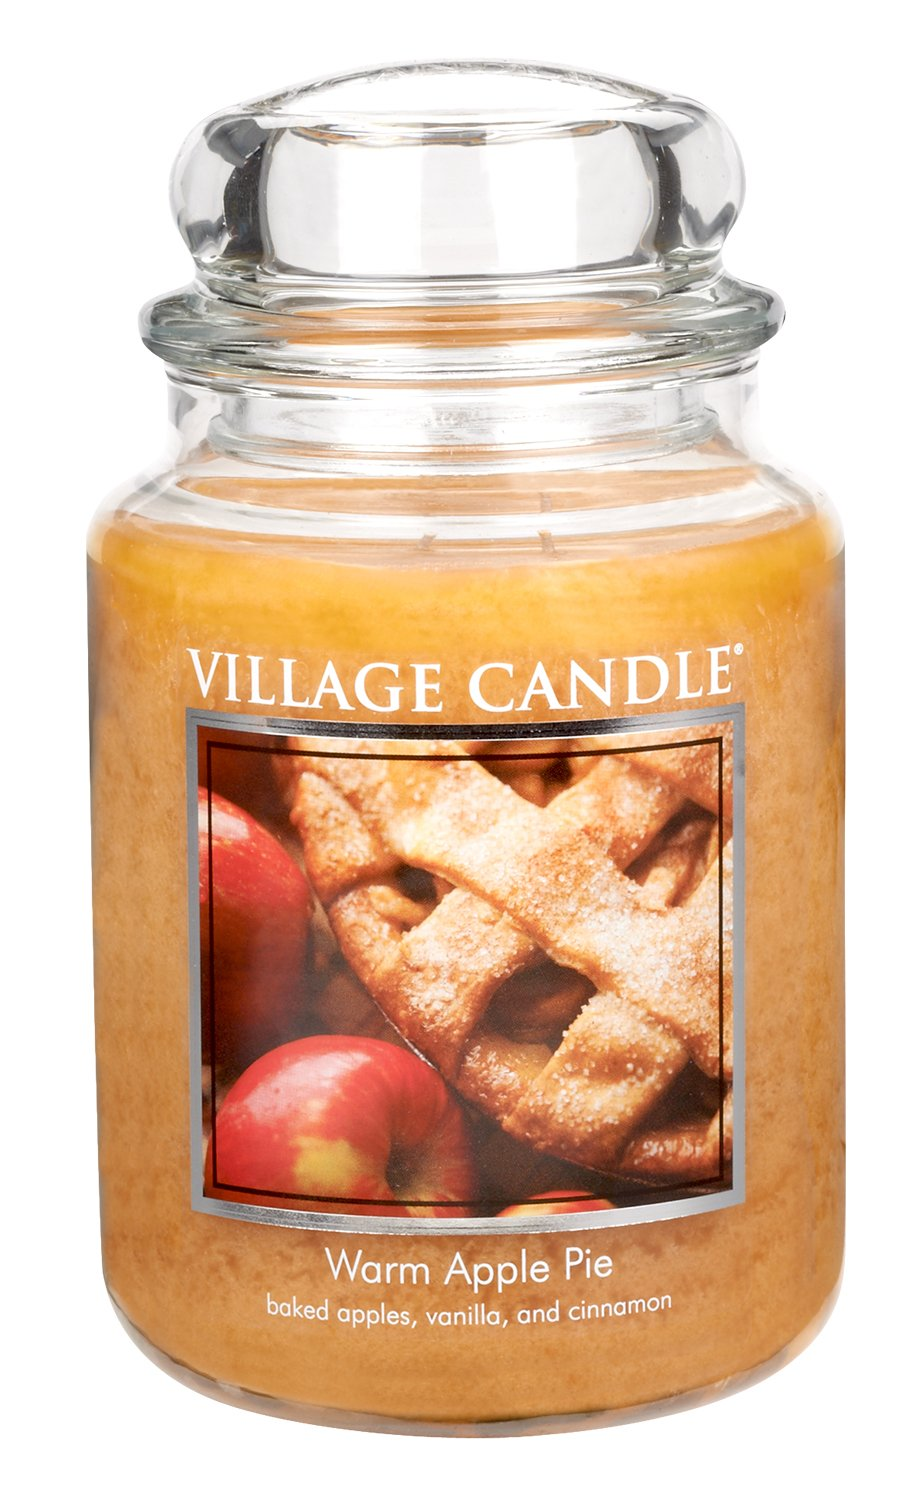 Village Candle Warm Apple Pie 26 oz Glass Jar Scented Candle, Large 106026307